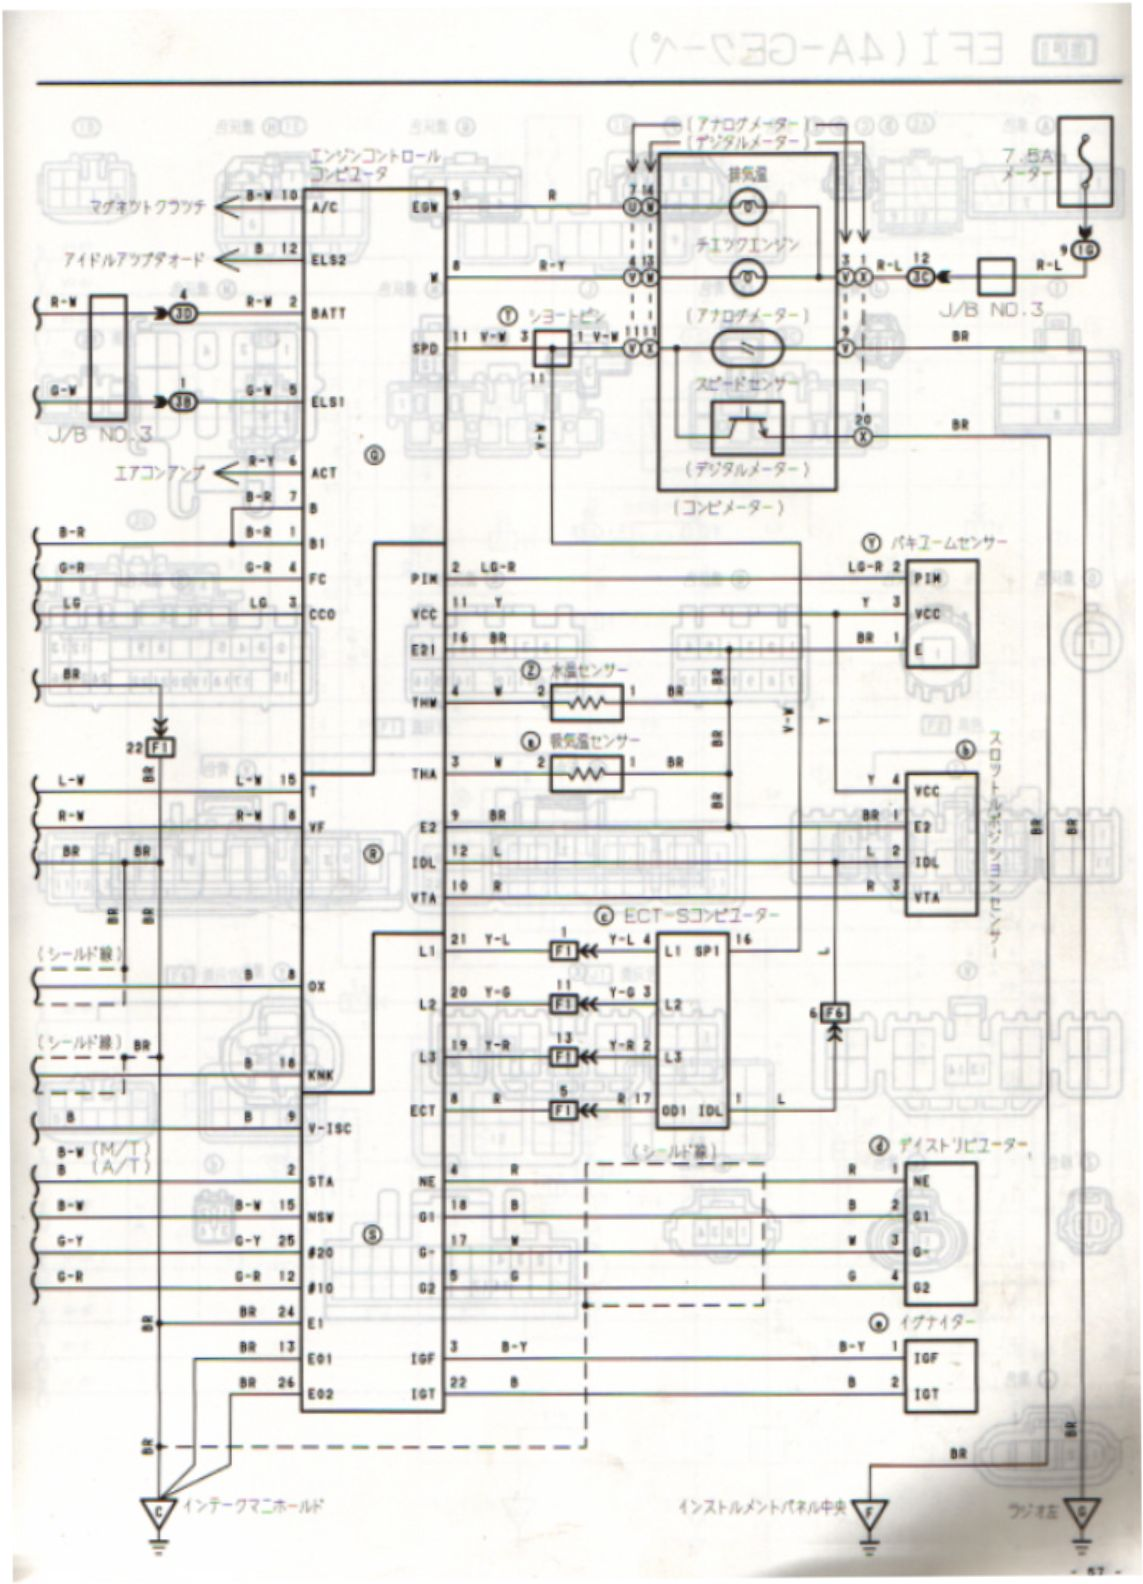 ae86 wiring diagram dc2 wiring diagram \u2022 wiring diagrams j 1992 toyota corolla wiring diagram at readyjetset.co